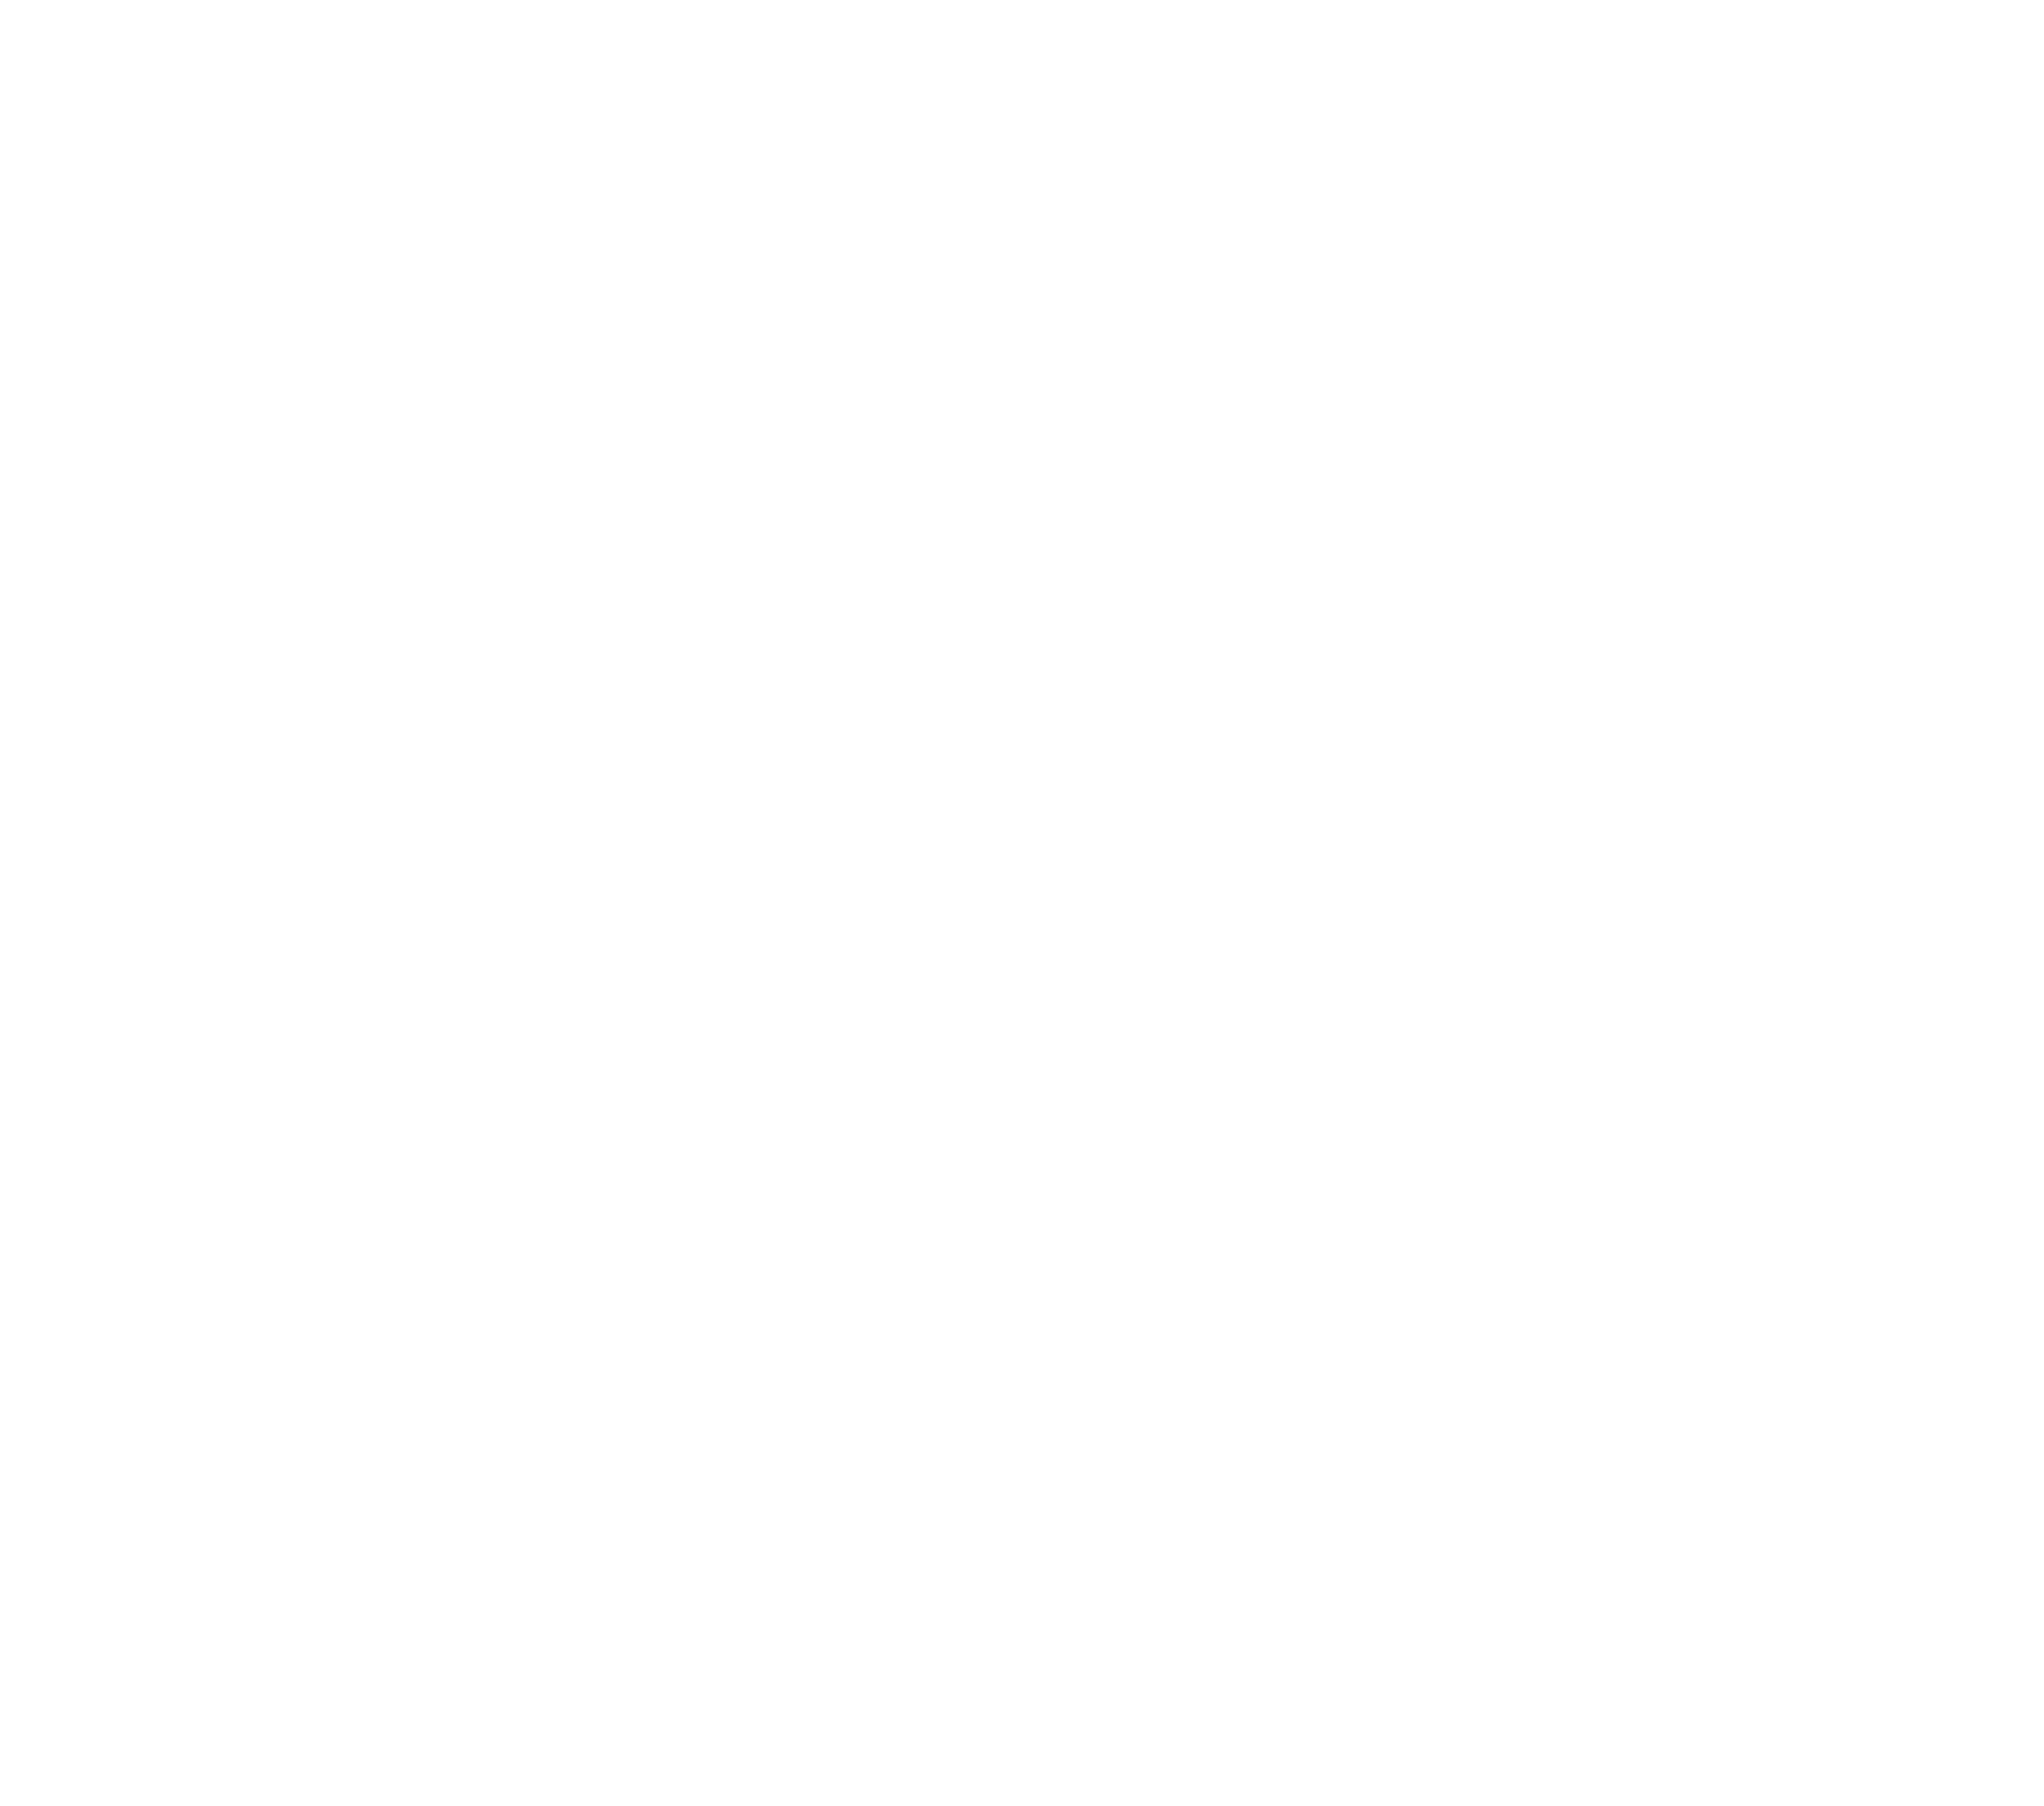 REEL Fly Fishing